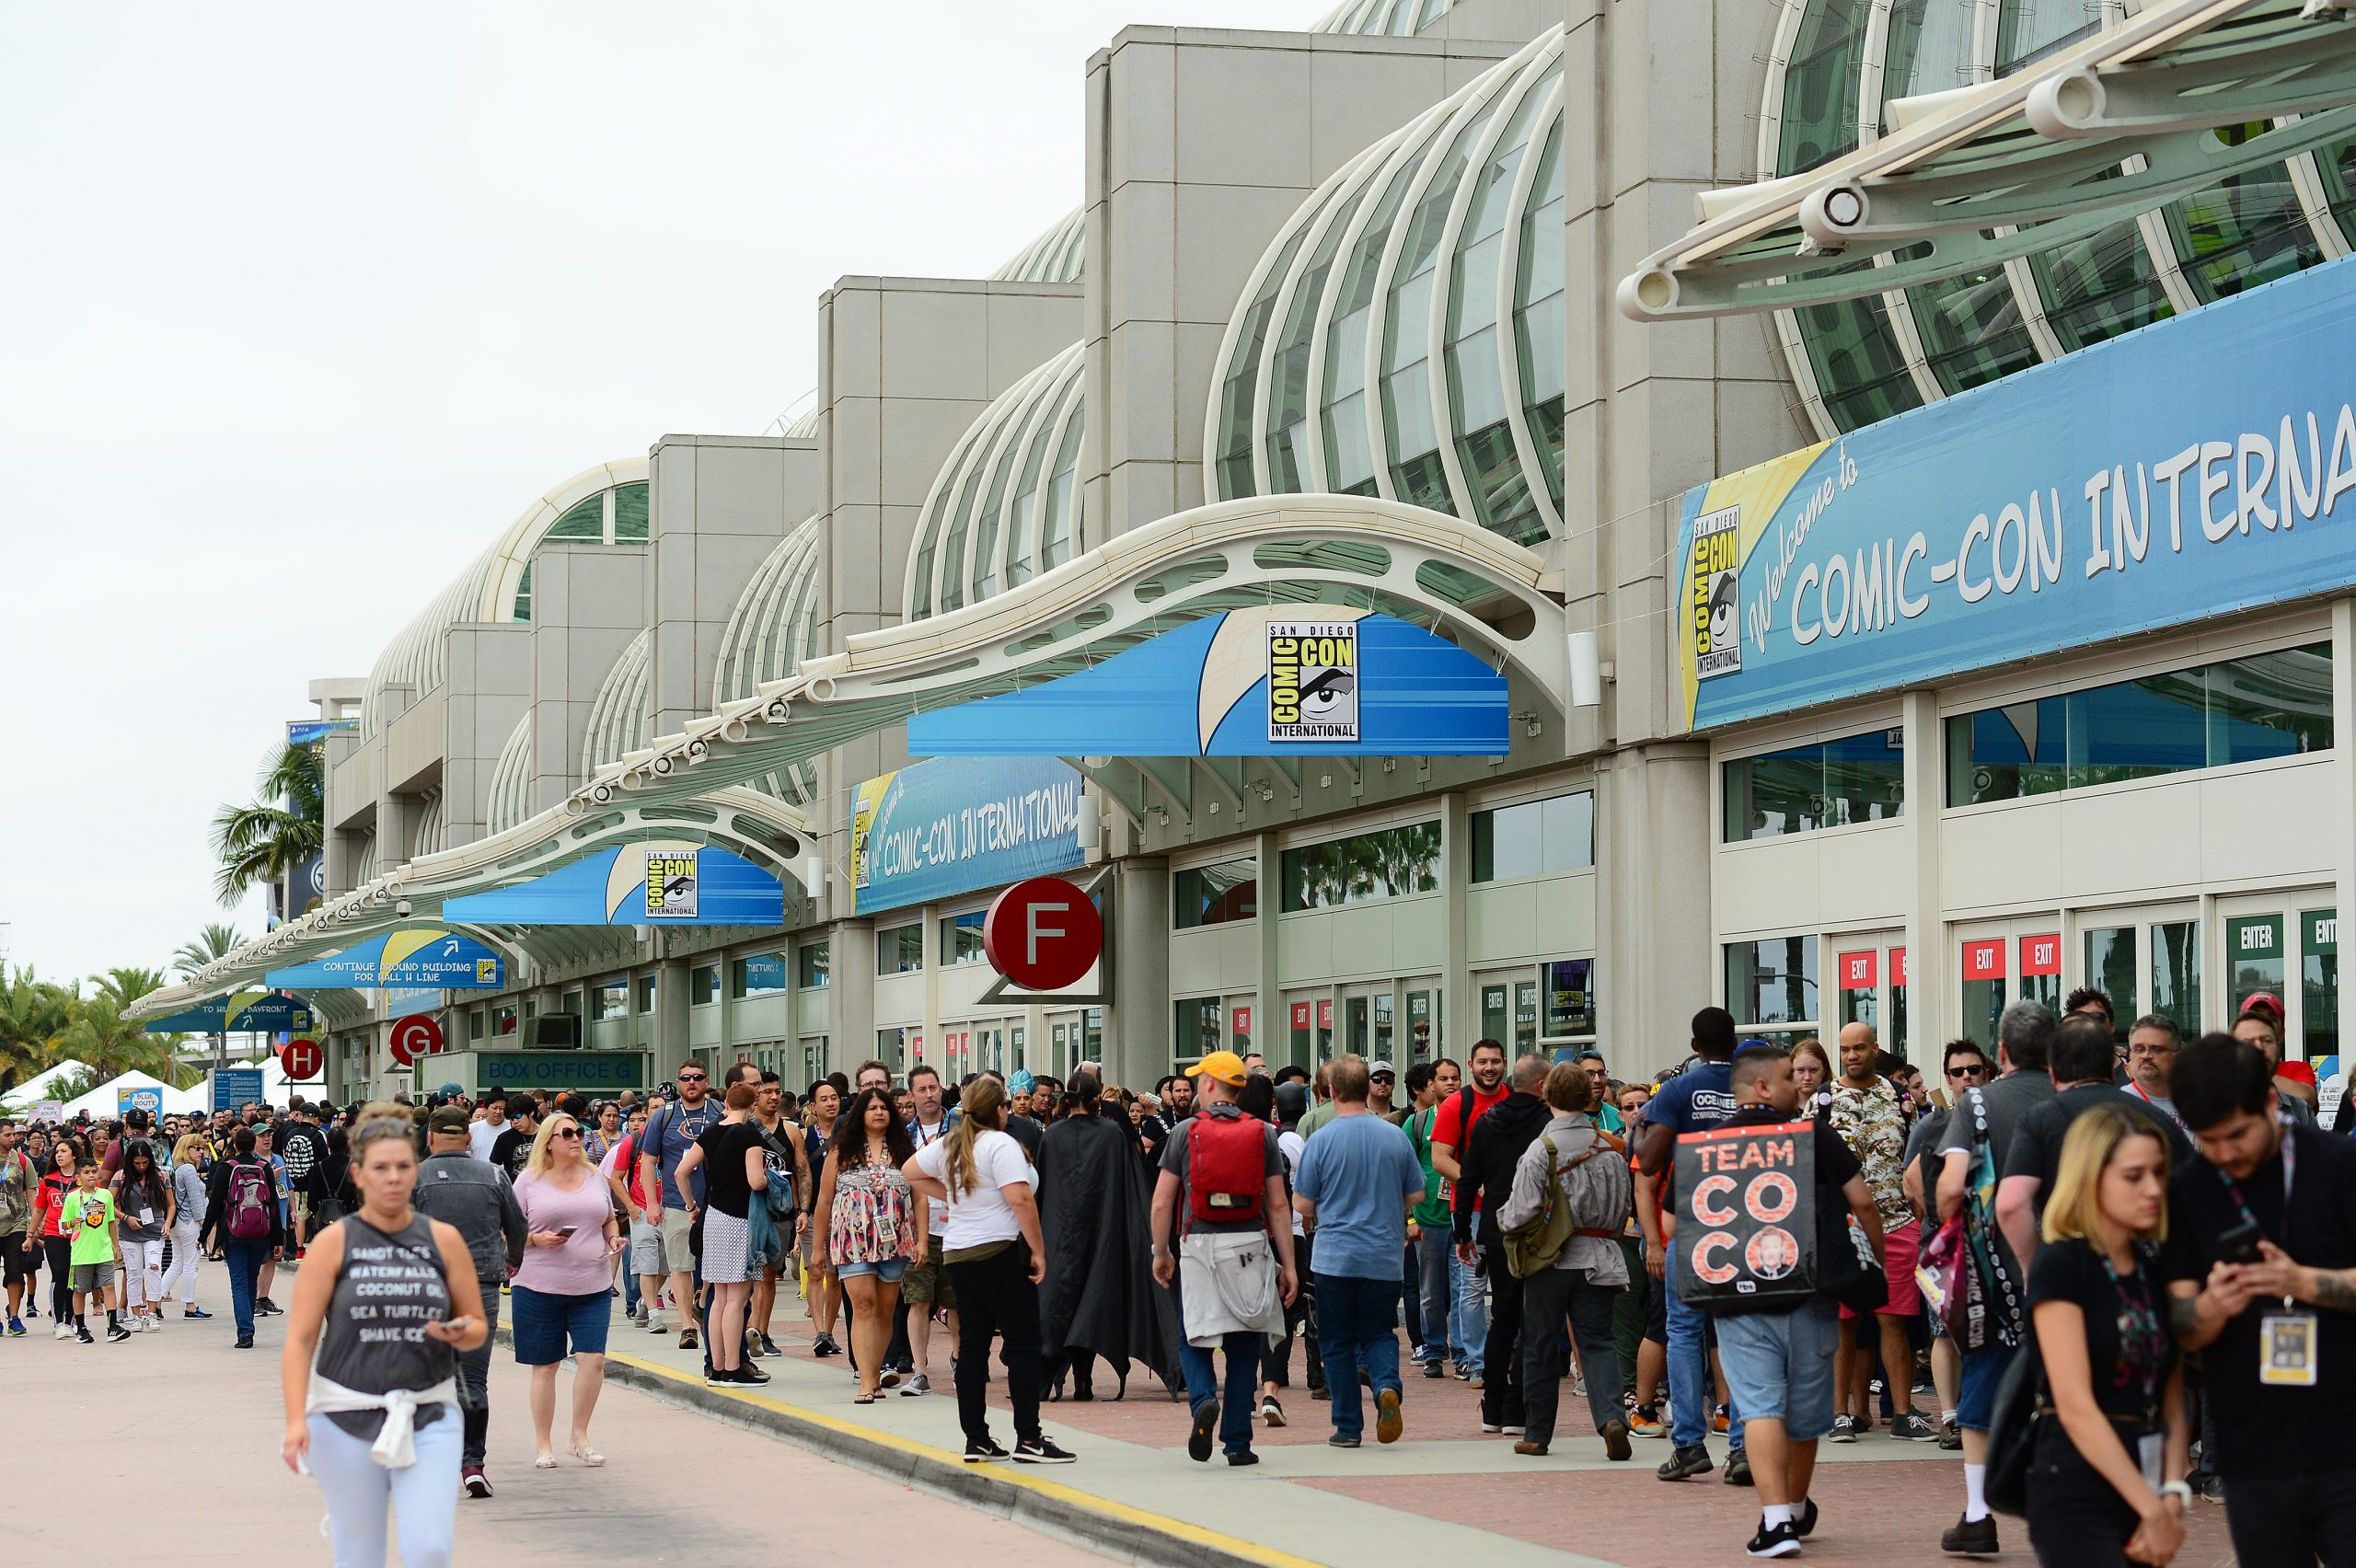 San Diego Comic Con Canceled Next Sdcc Will Take Place In